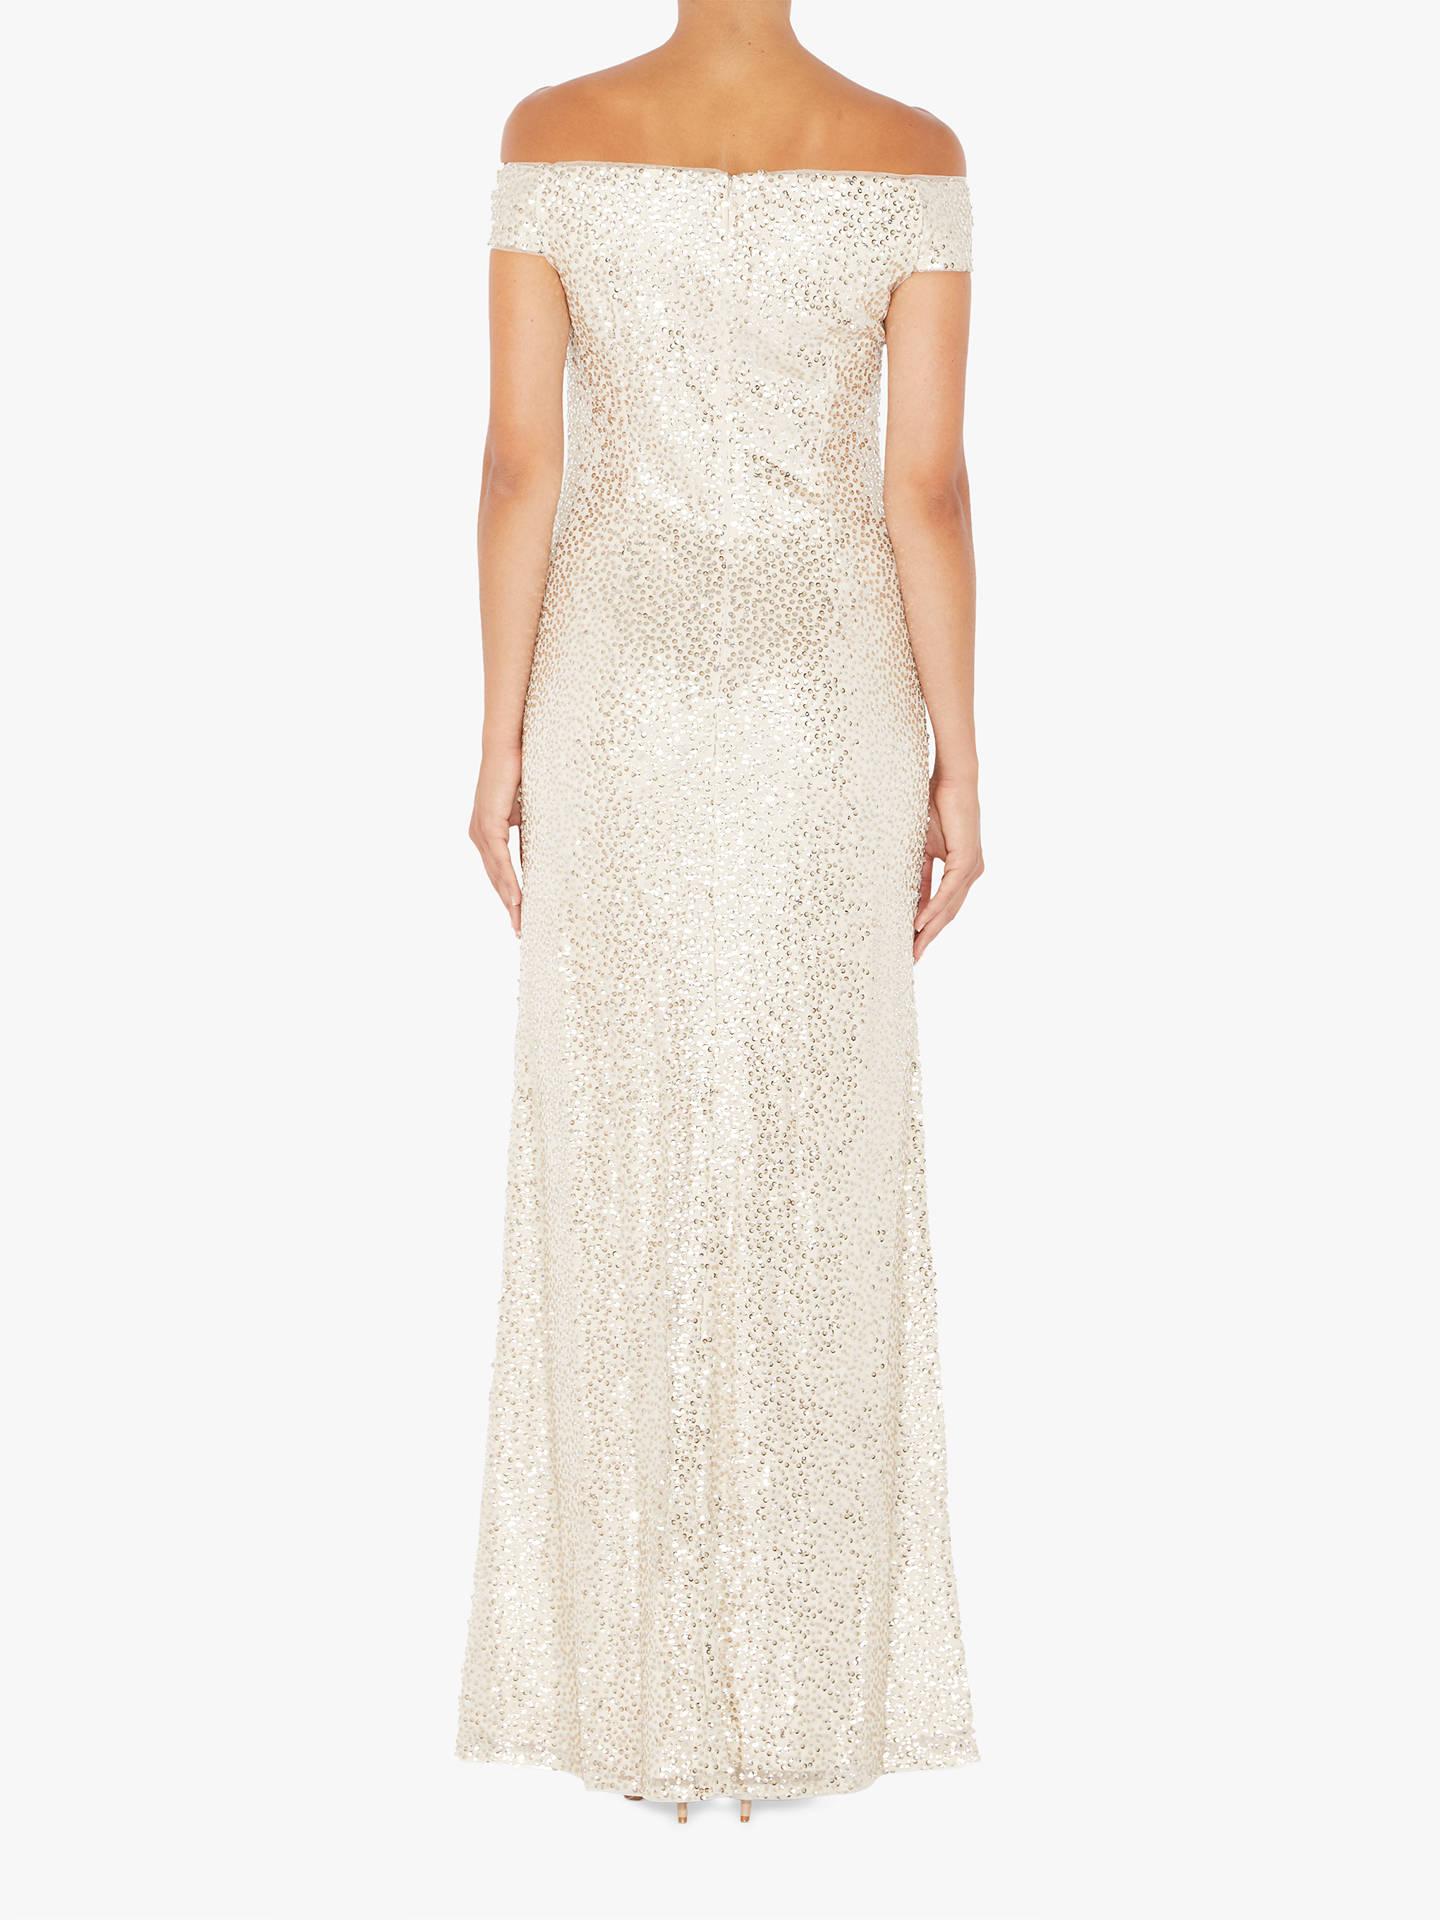 BuyAdrianna Papell Bardot Neckline Long Dress, Natural, 6 Online at johnlewis.com